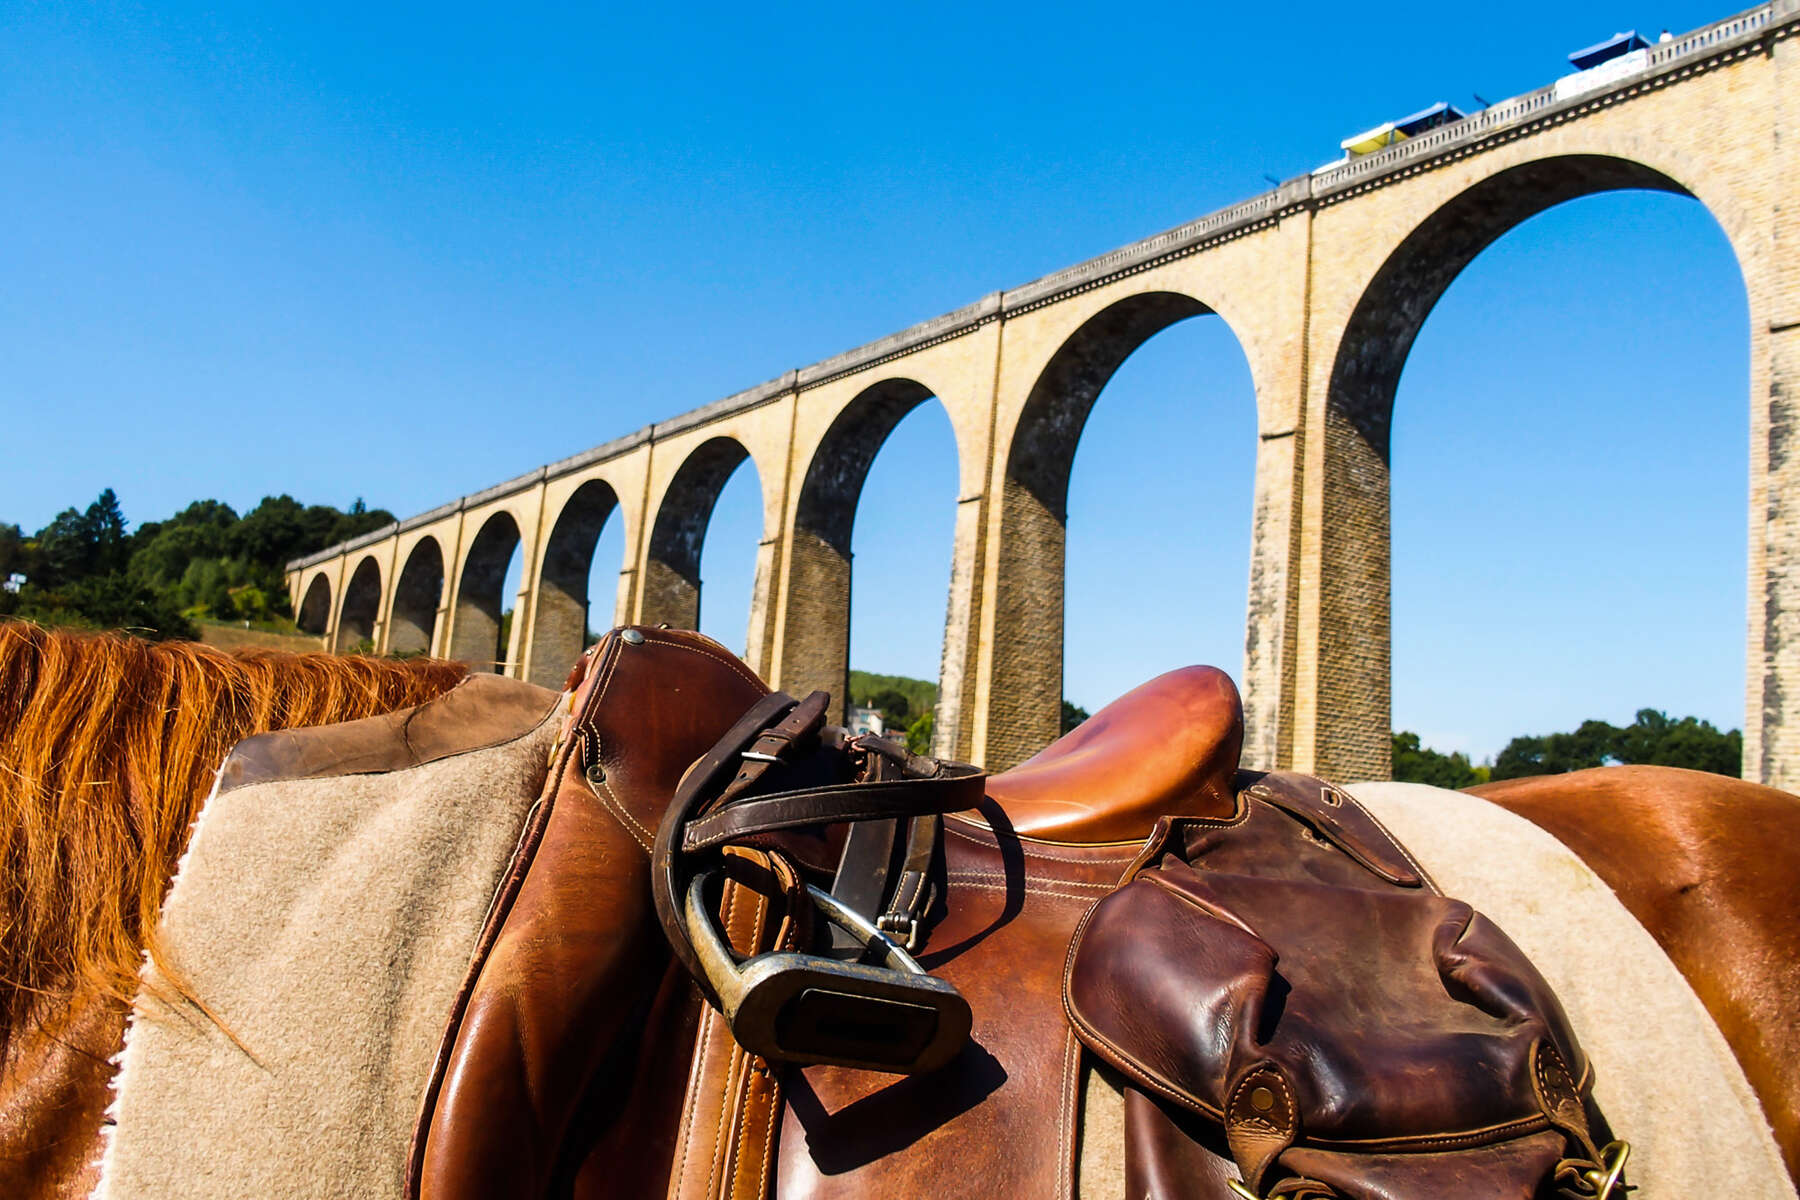 Horseback riding in the Poitou